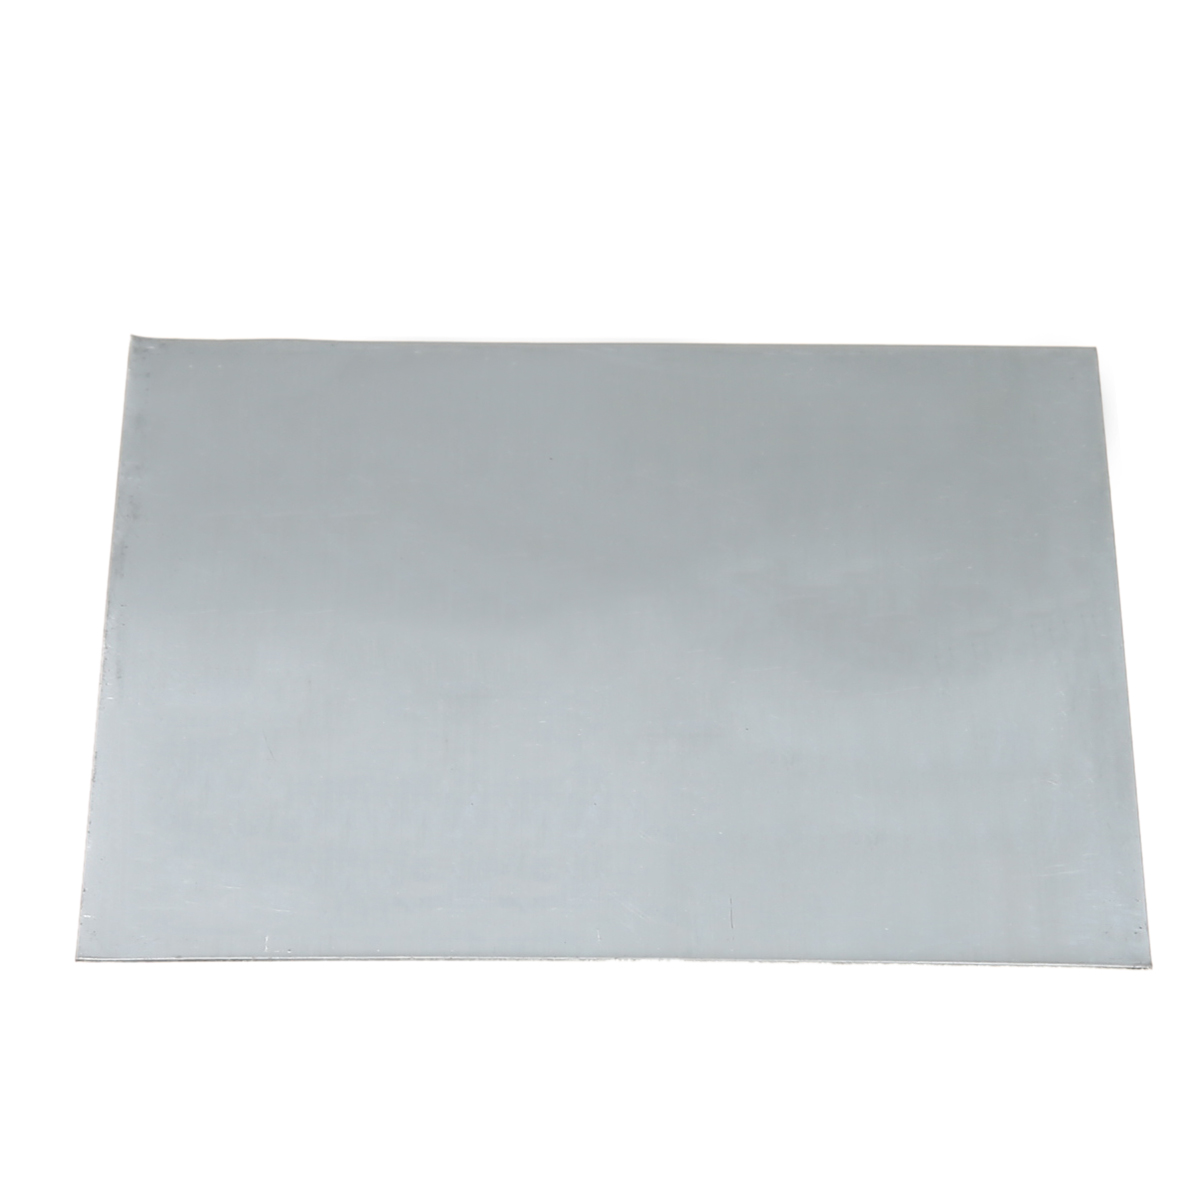 1pc High Purity Zinc Zn Sheet Plate 100mmx100mmx0.2mm Bluish-white Metal Color For Science Lab Chemical tungsten sheet plate for scientific research and experiment high purity